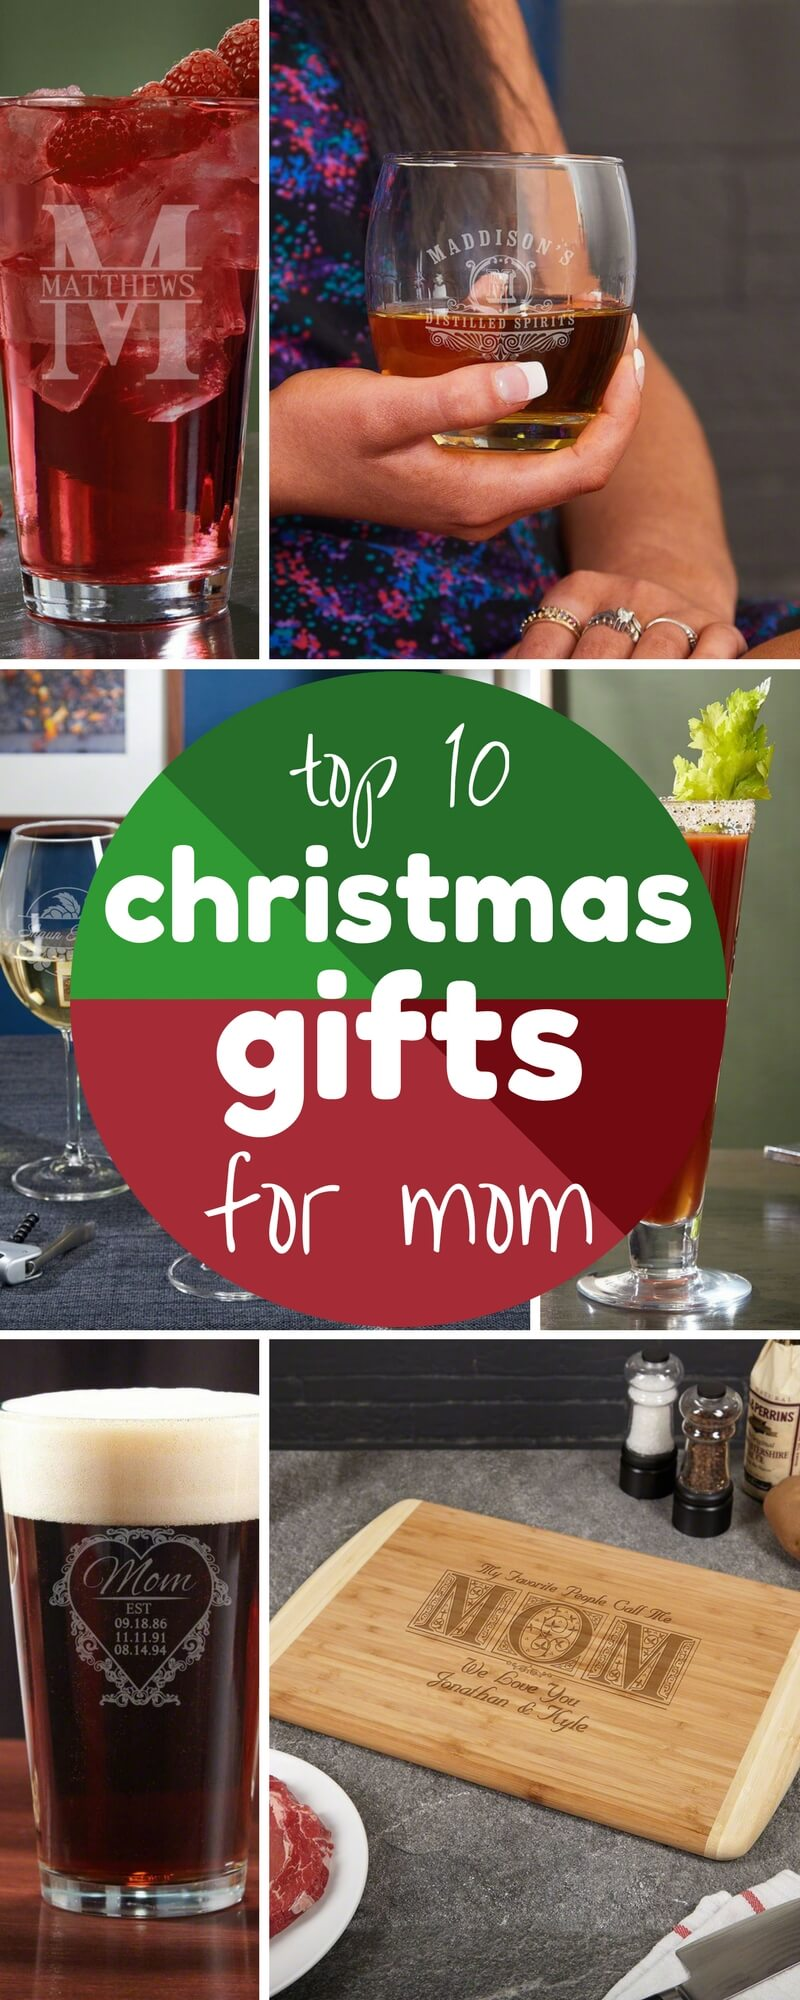 Wonderful Christmas Gifts for Mom